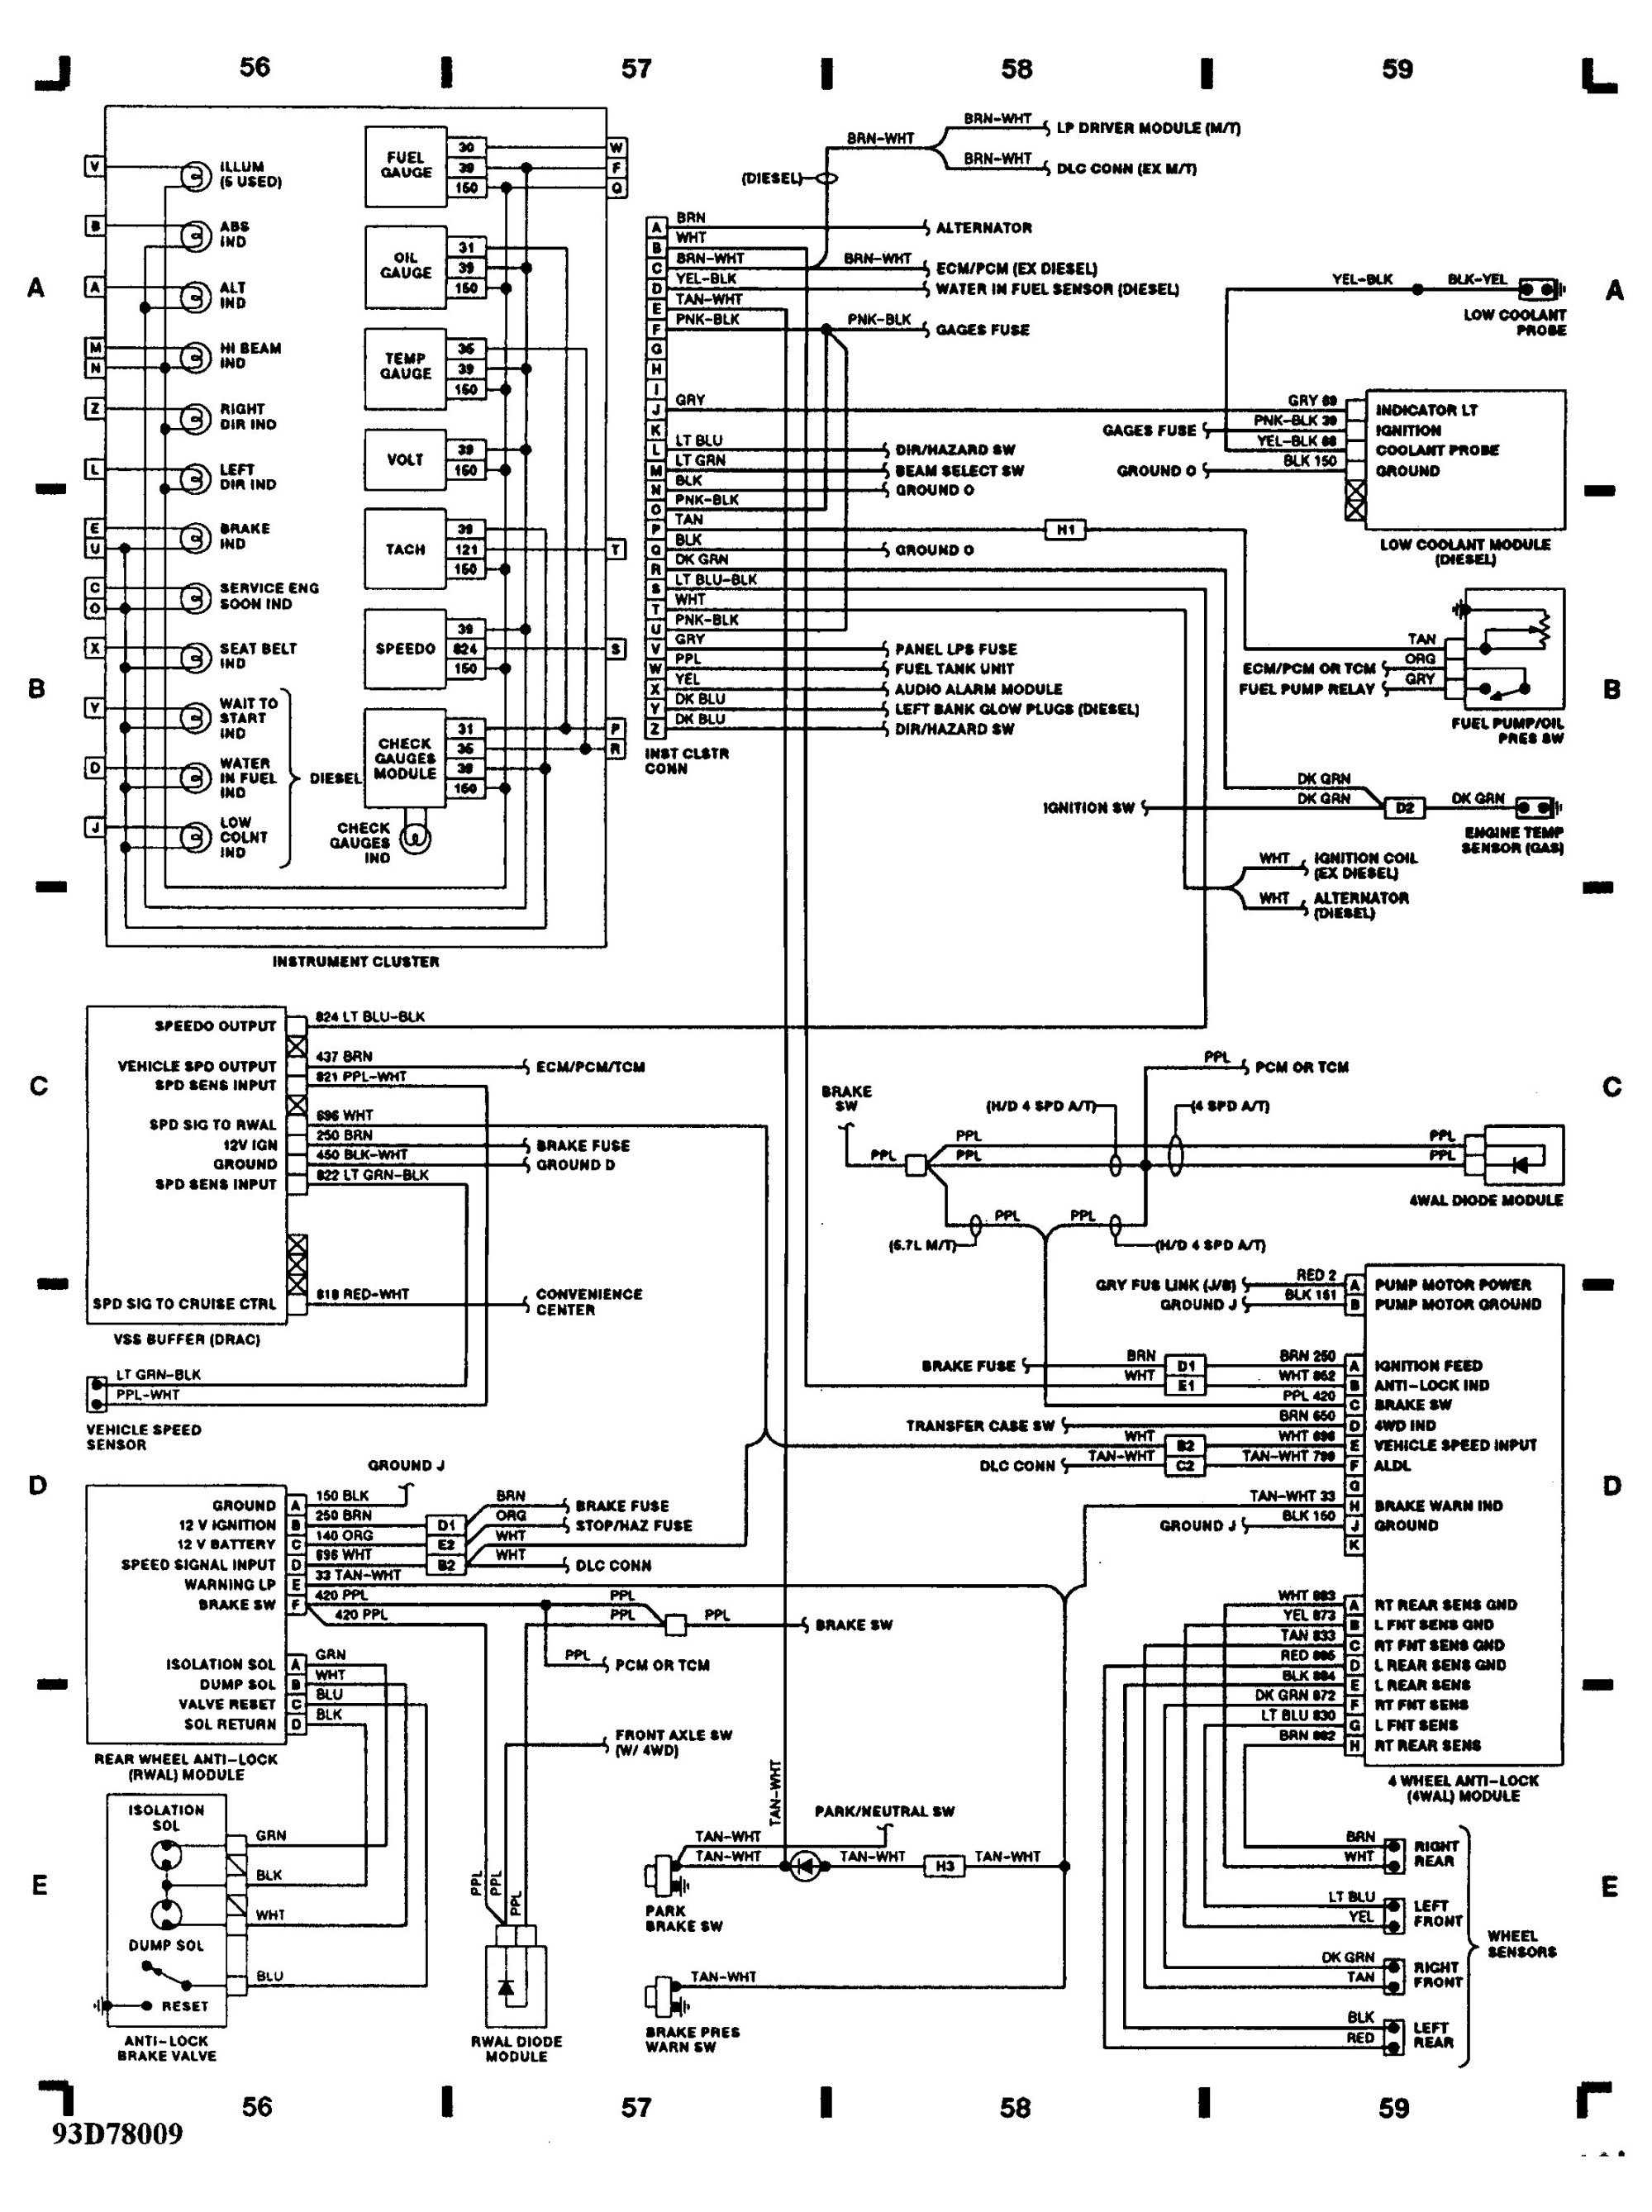 hight resolution of 1997 s10 engine diagram wiring diagram log 1997 s10 headlight wiring diagram 1997 s10 wiring diagram